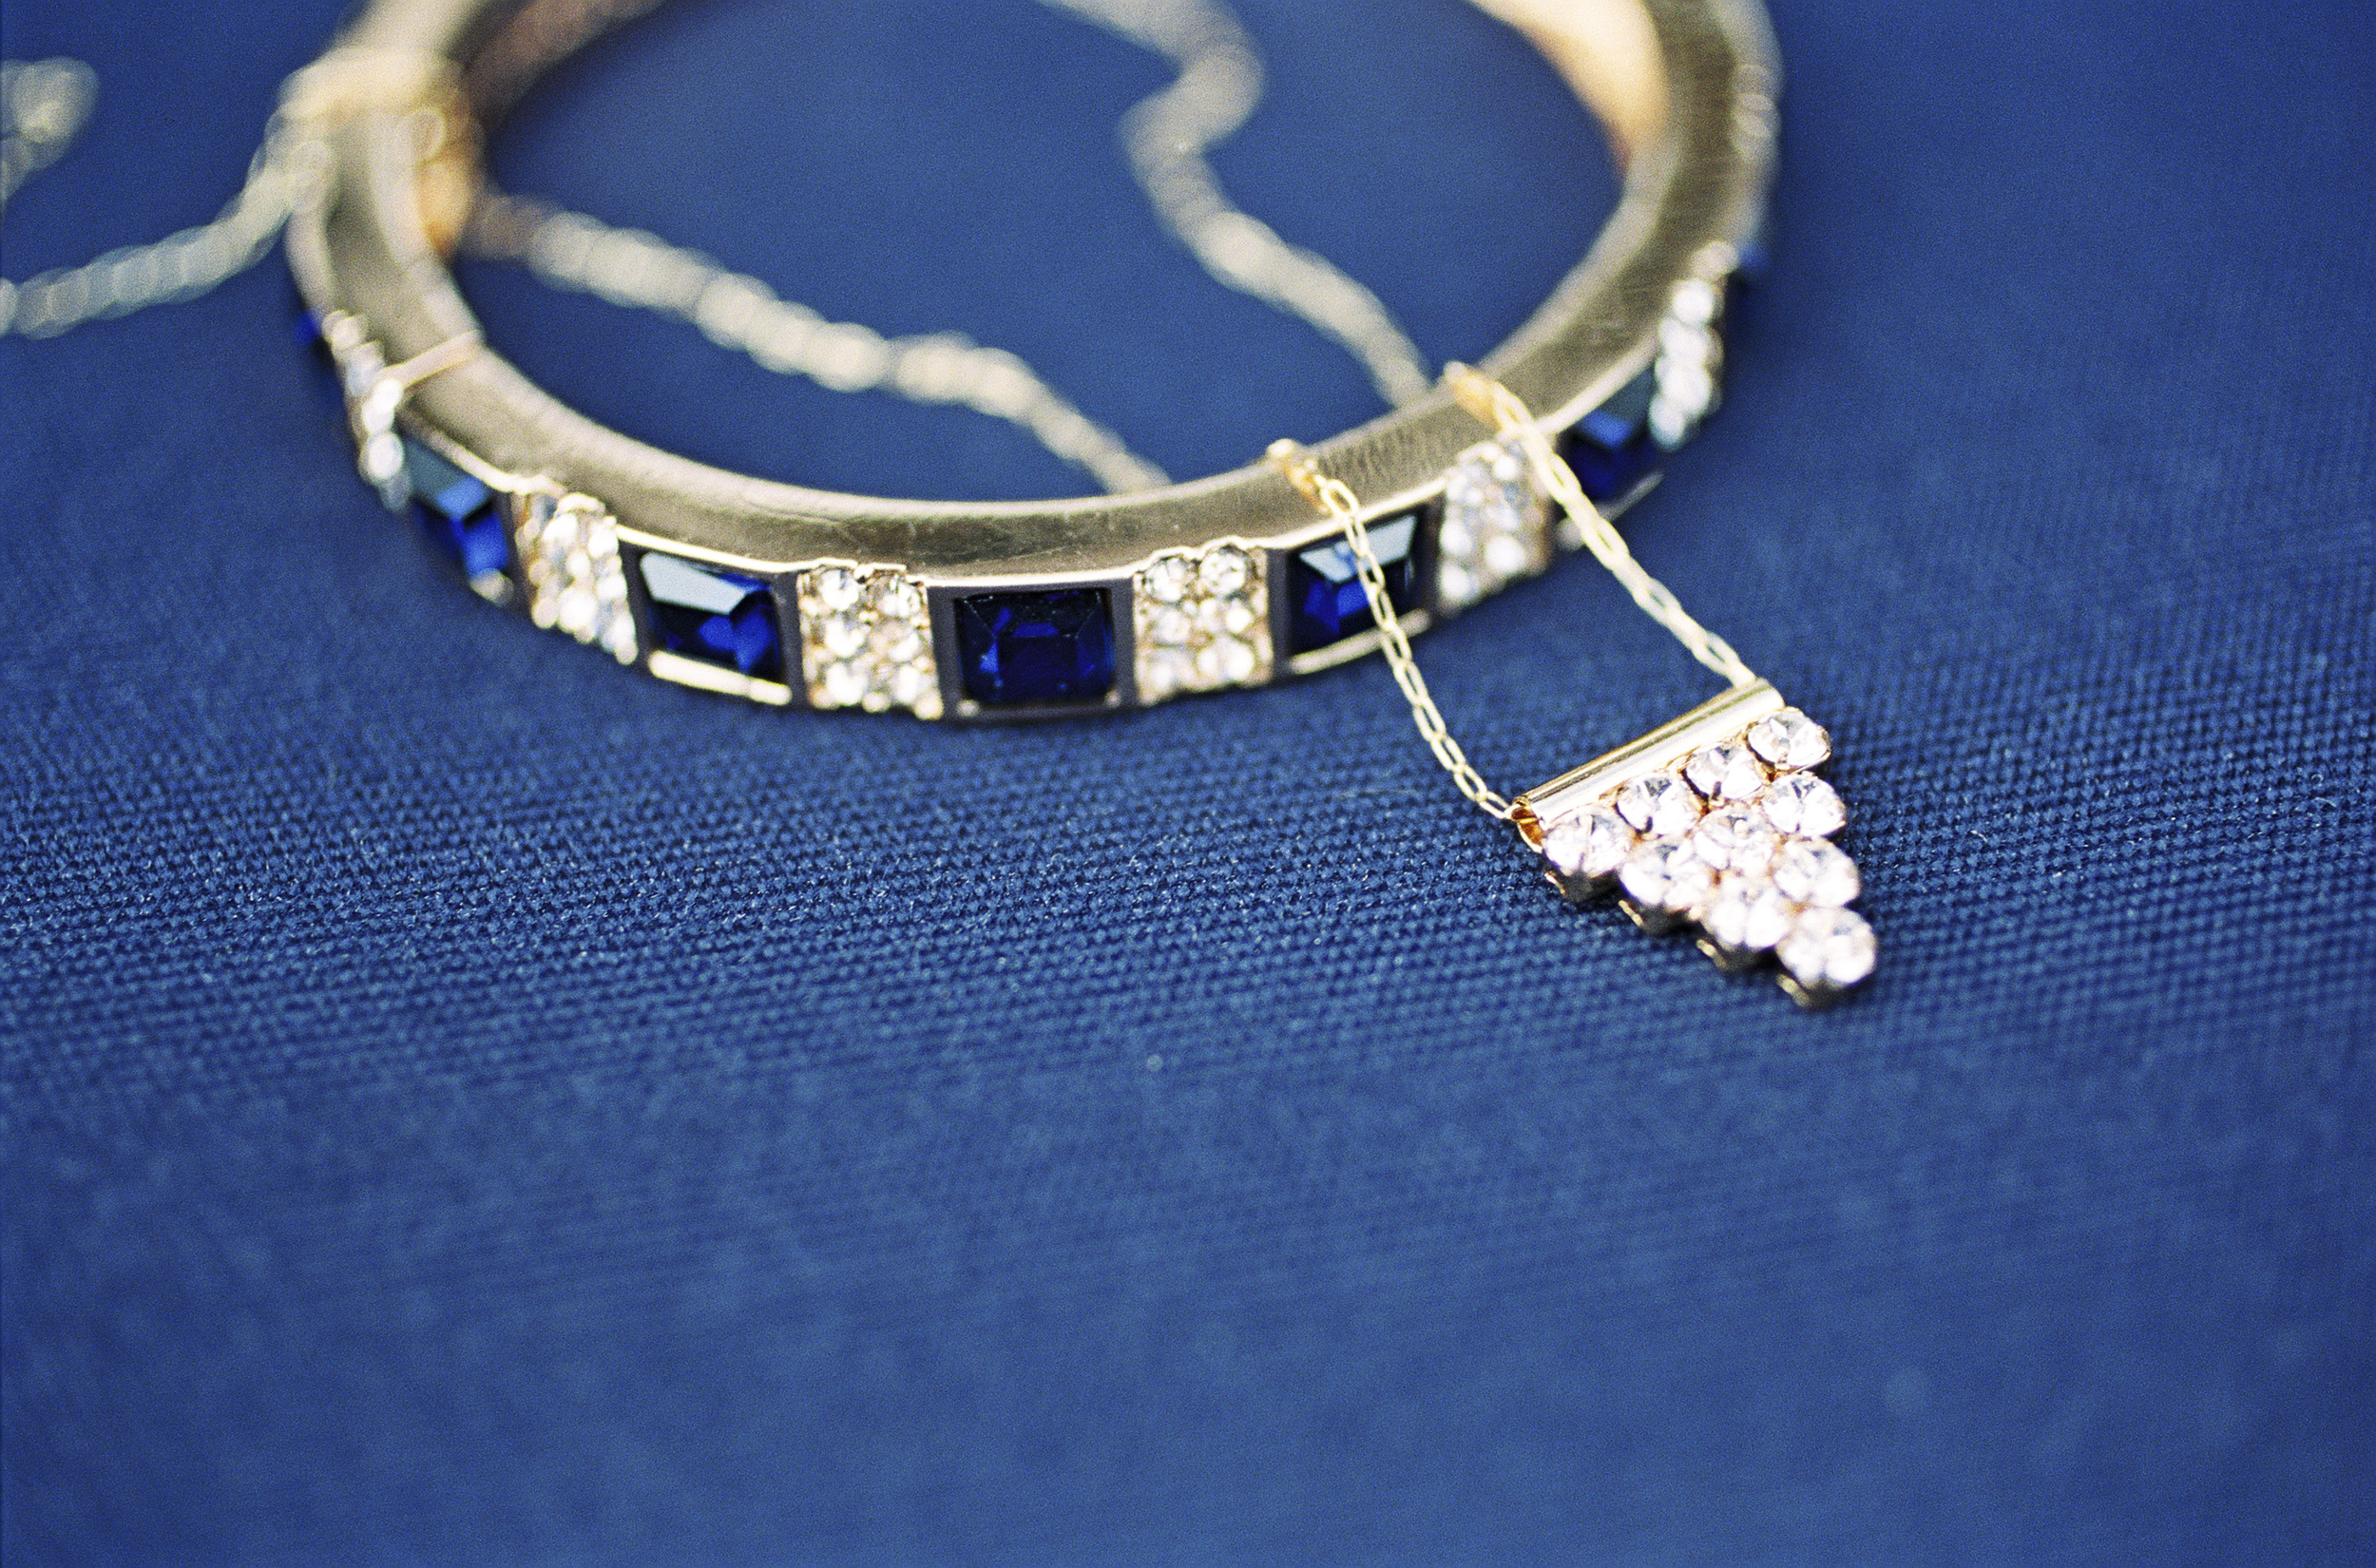 Sapphire Alyn Bangle and Single Pyramid Necklace for the Bridesmaids. Photo Credit: Alicia Swedenborg